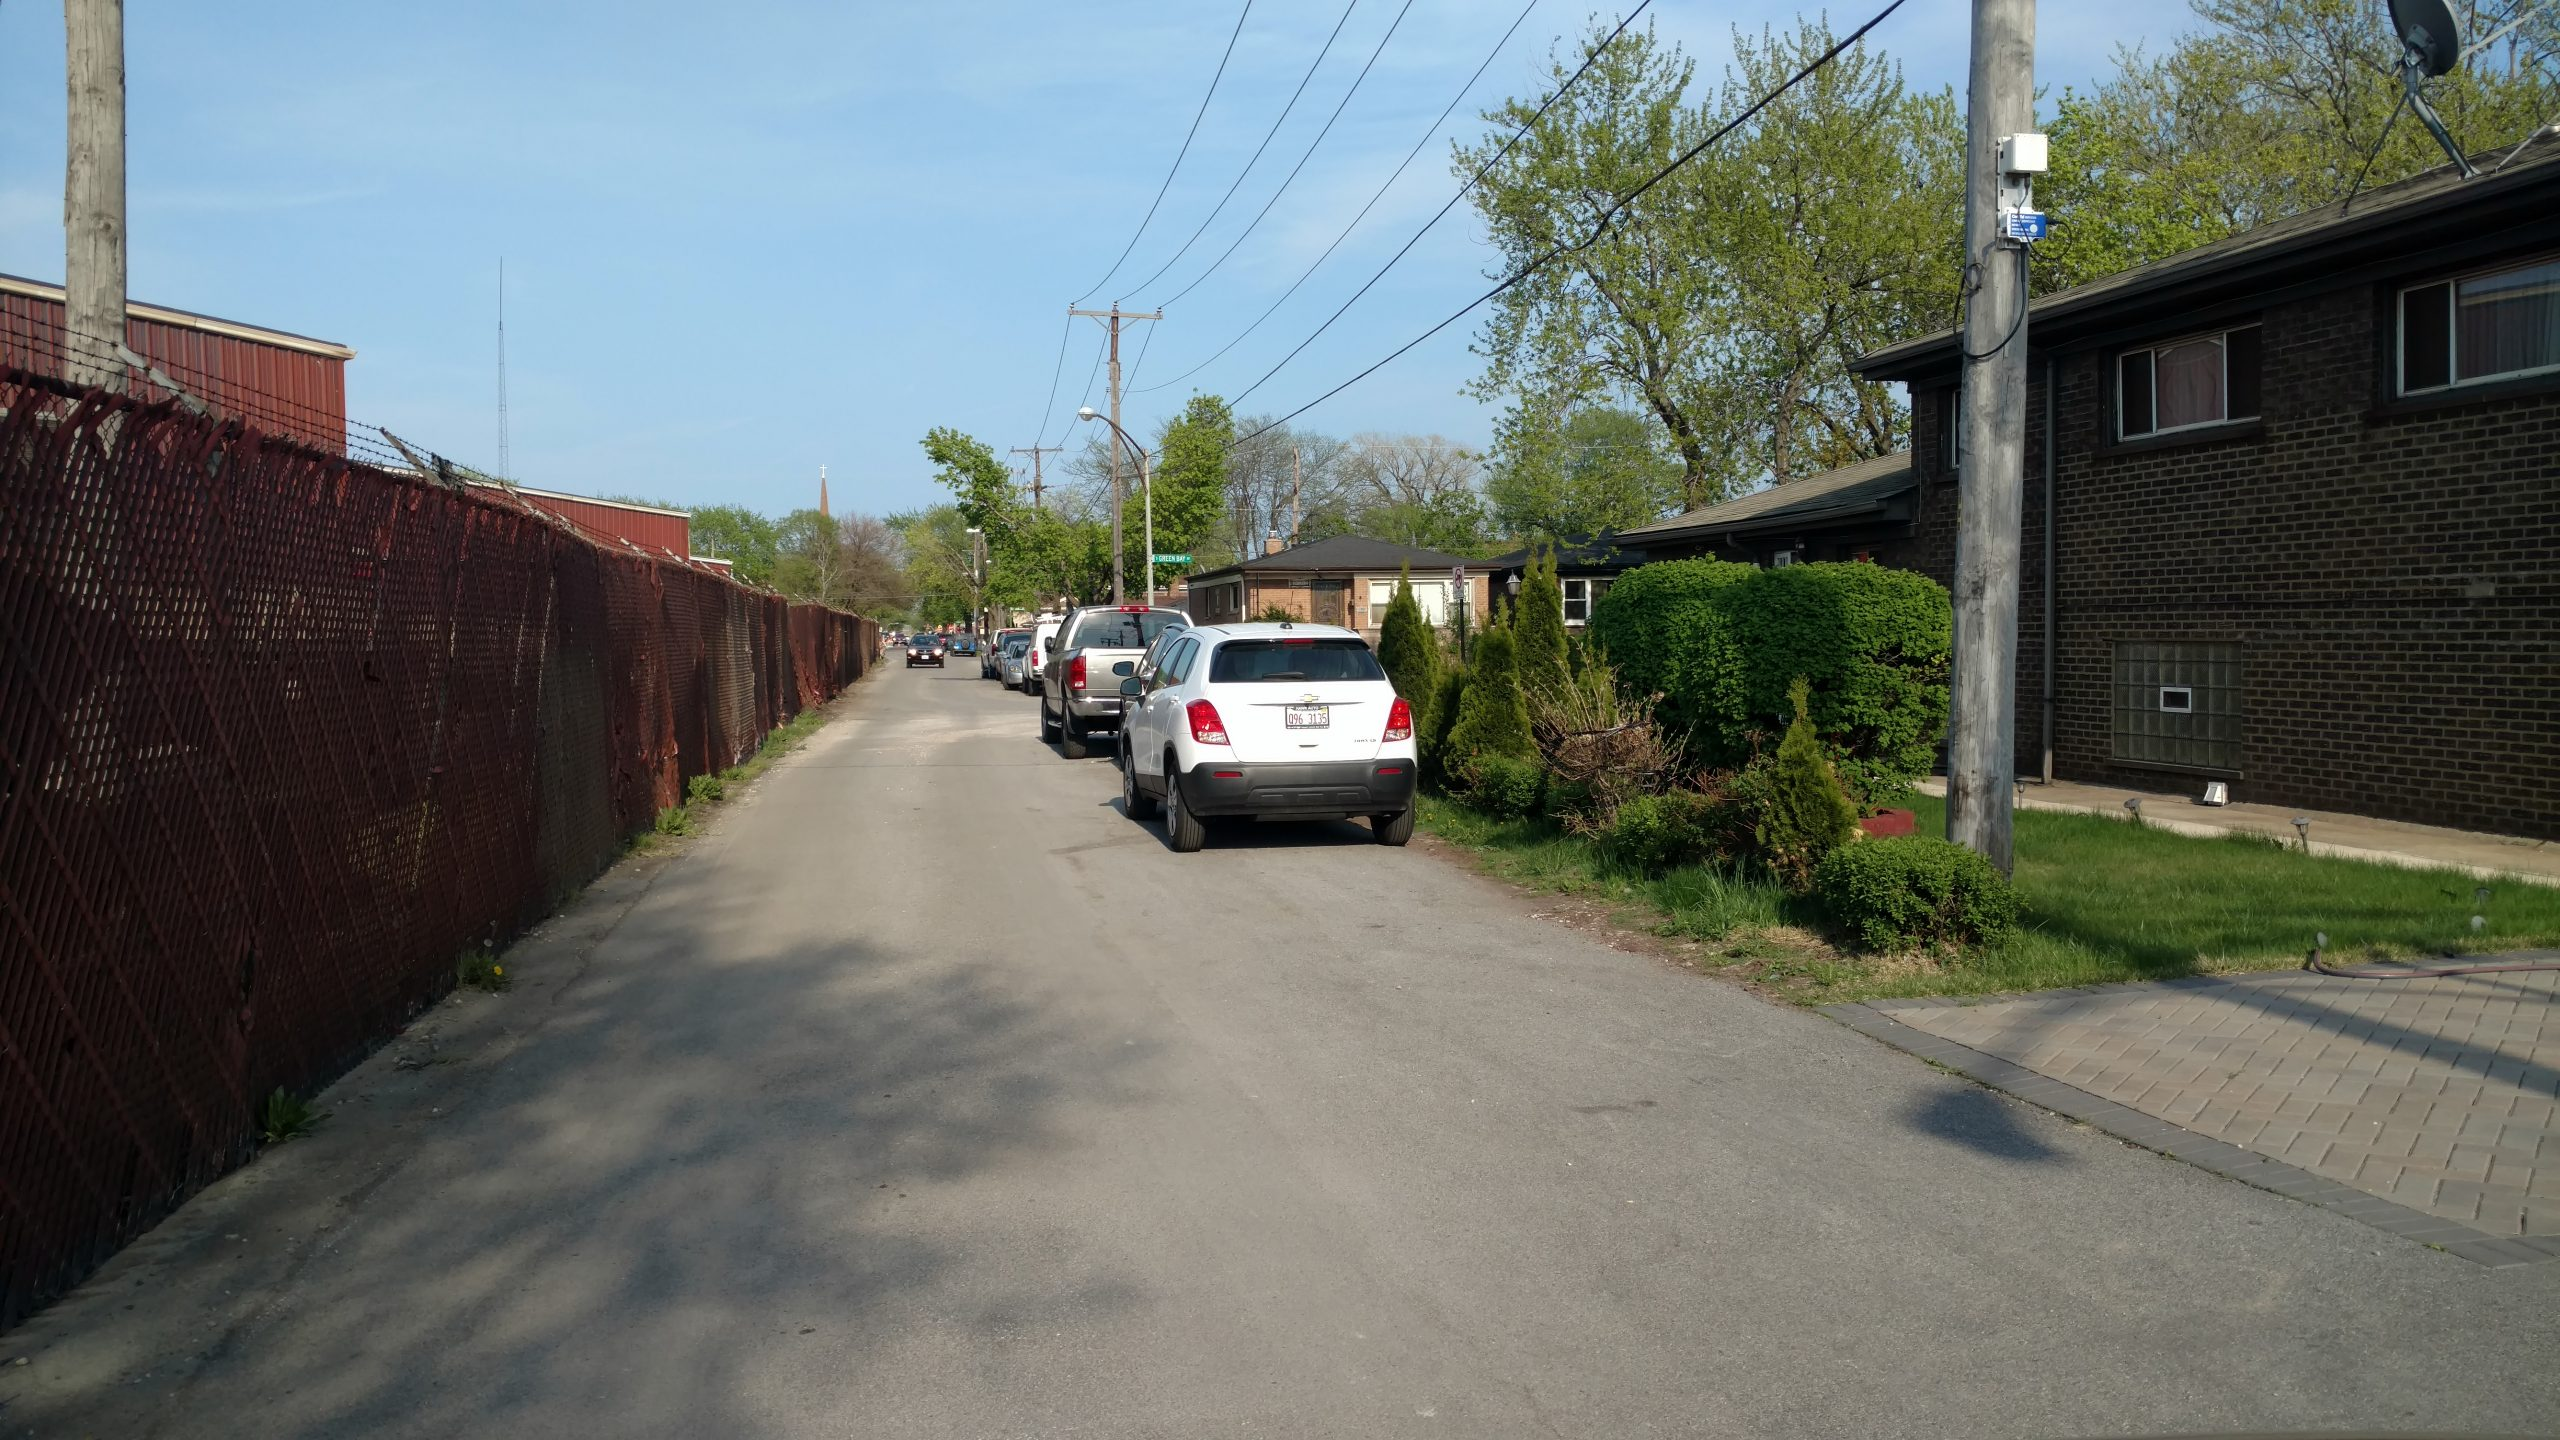 A section of S.H. Bell's property line (left) runs parallel to houses on E. 103rd.